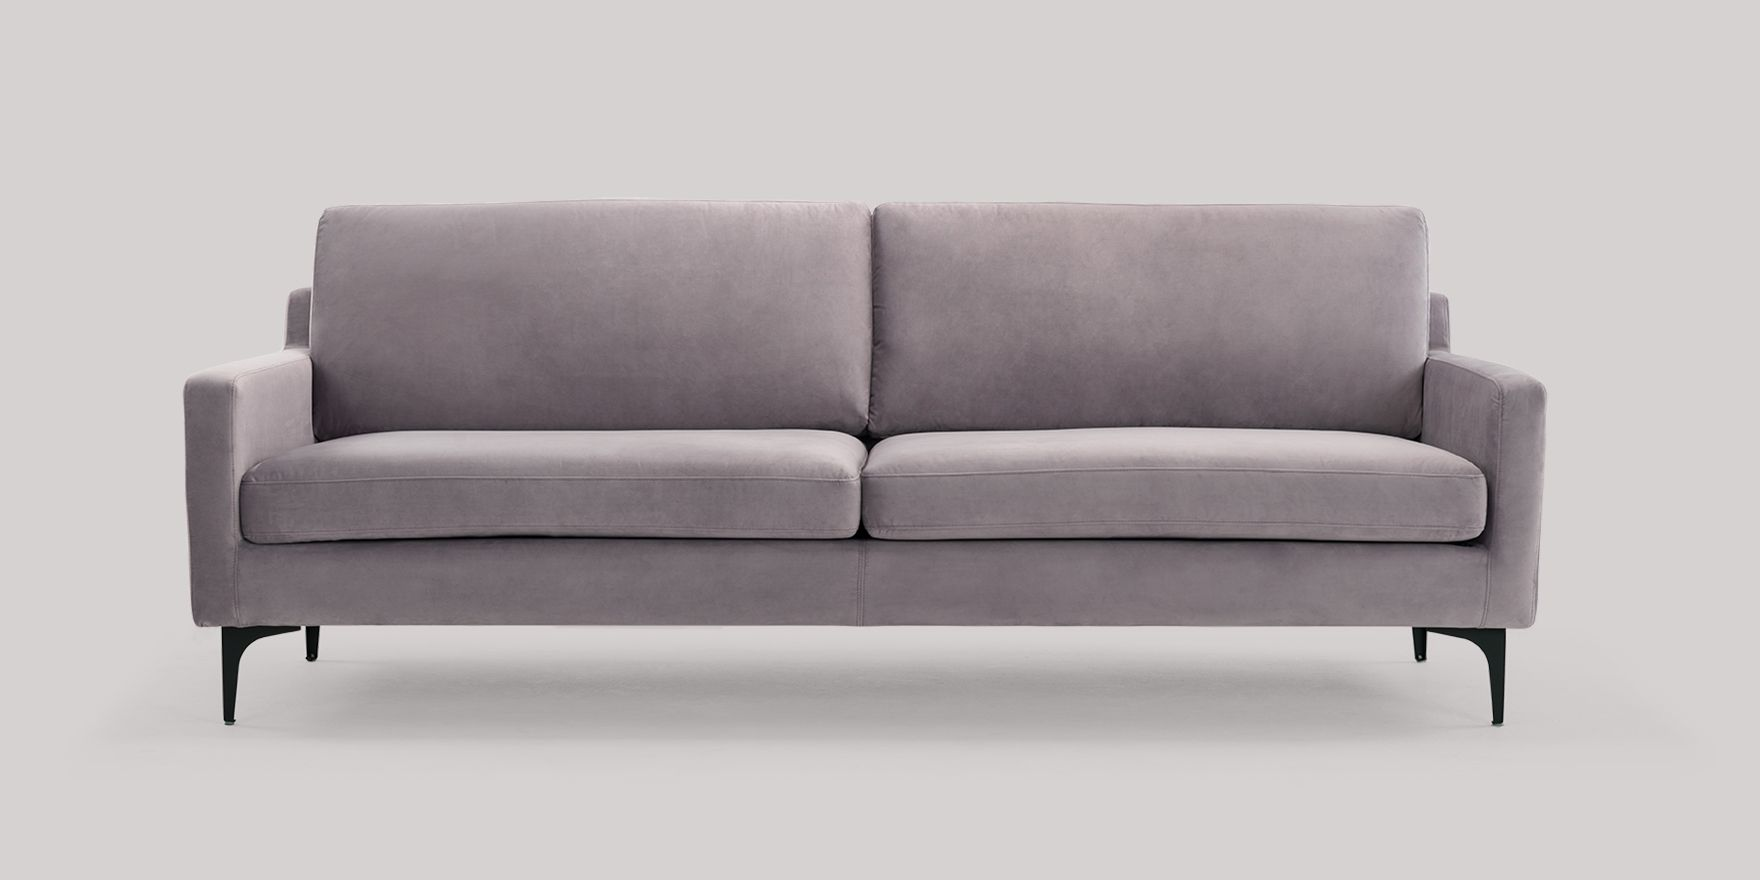 Full Size of Lilah Corner Sofa Lilac Living Room Lila Bed Uk Queen Sleeper Cushions 3 Piece Suite Covers Chair Set Anna Walter Knoll Rattan Sitzer Mit Relaxfunktion Leinen Sofa Sofa Lila